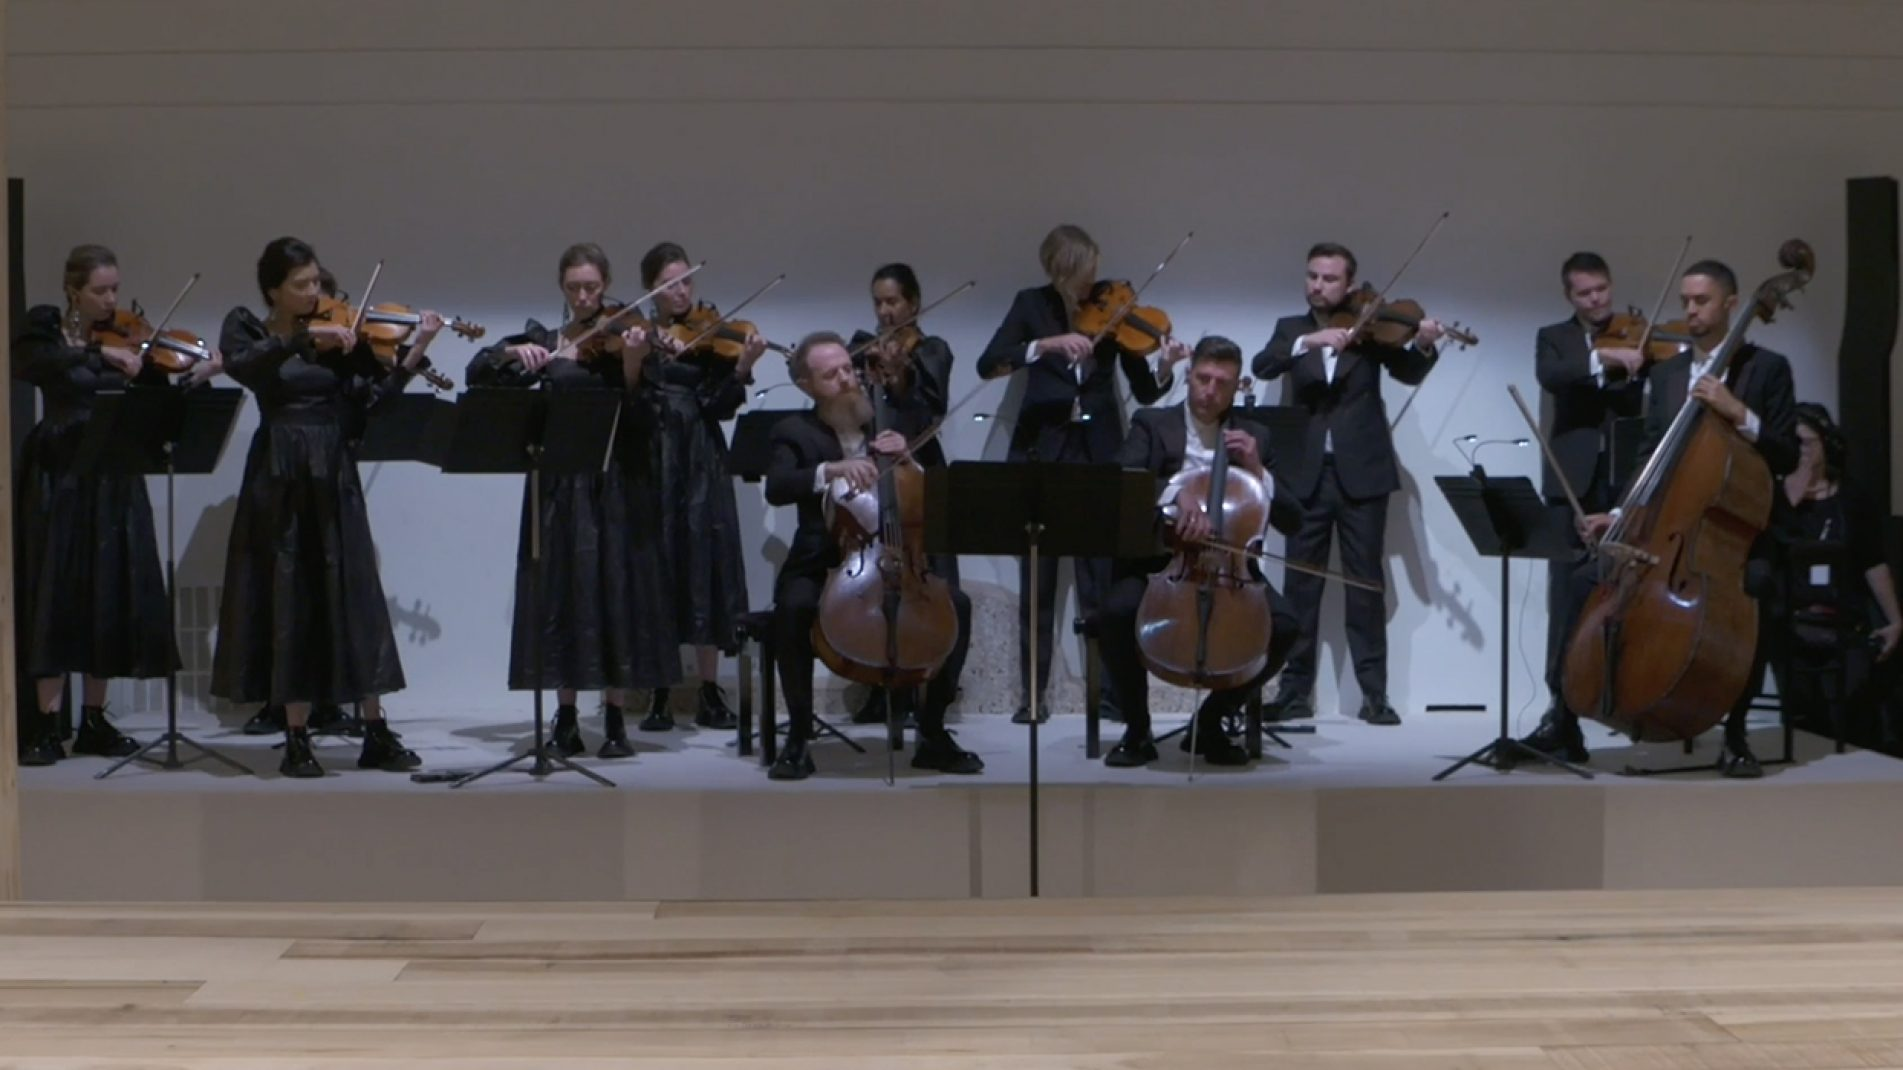 The London Contemporary Orchestra performing Isobel Waller-Bridge's Arise at the Alexander McQueen Spring/Summer 2020 show